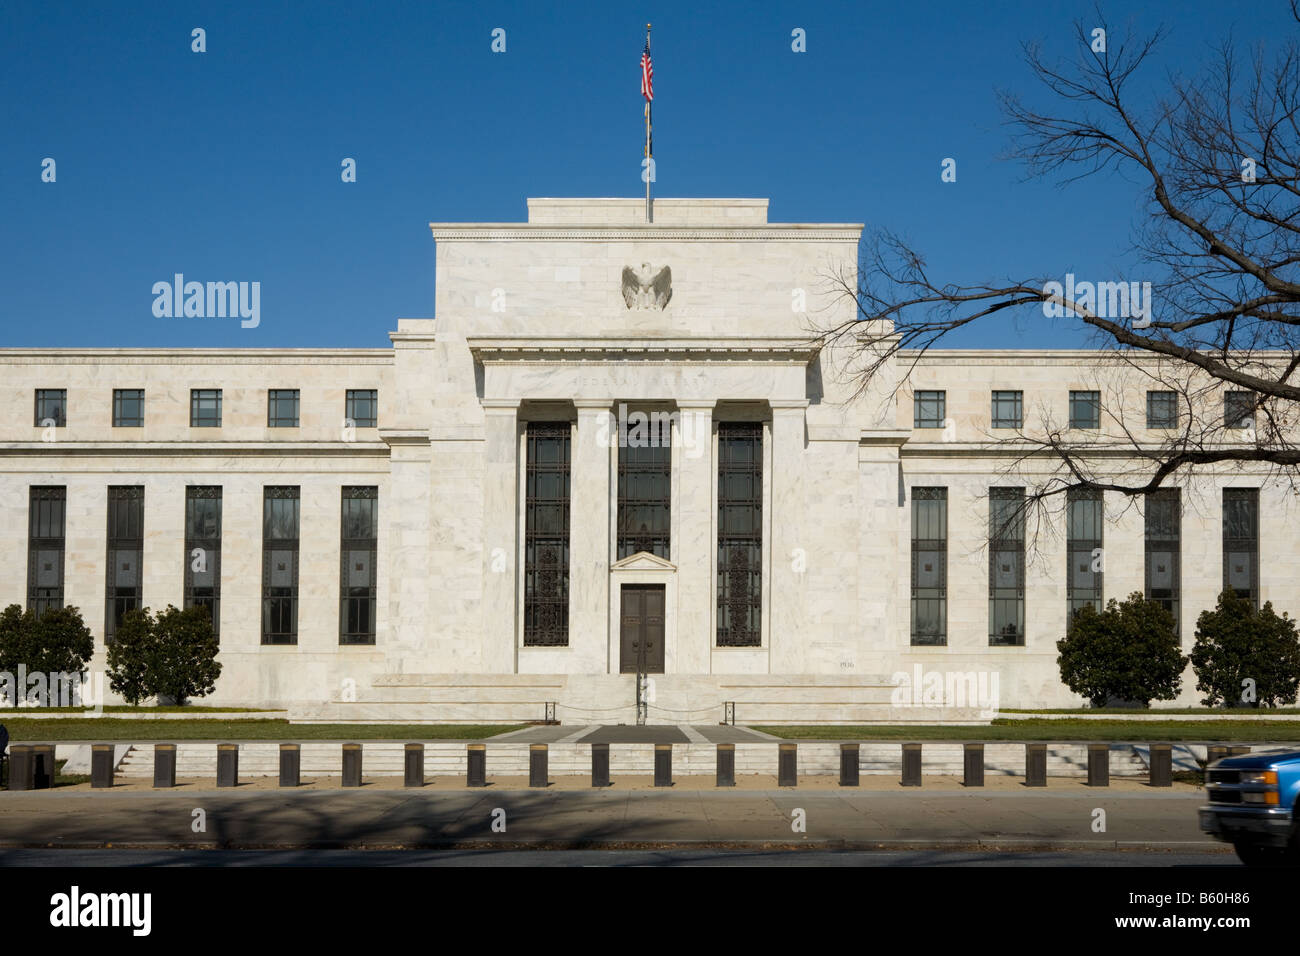 Federal Reserve Bank Washington D.C. - Stock Image